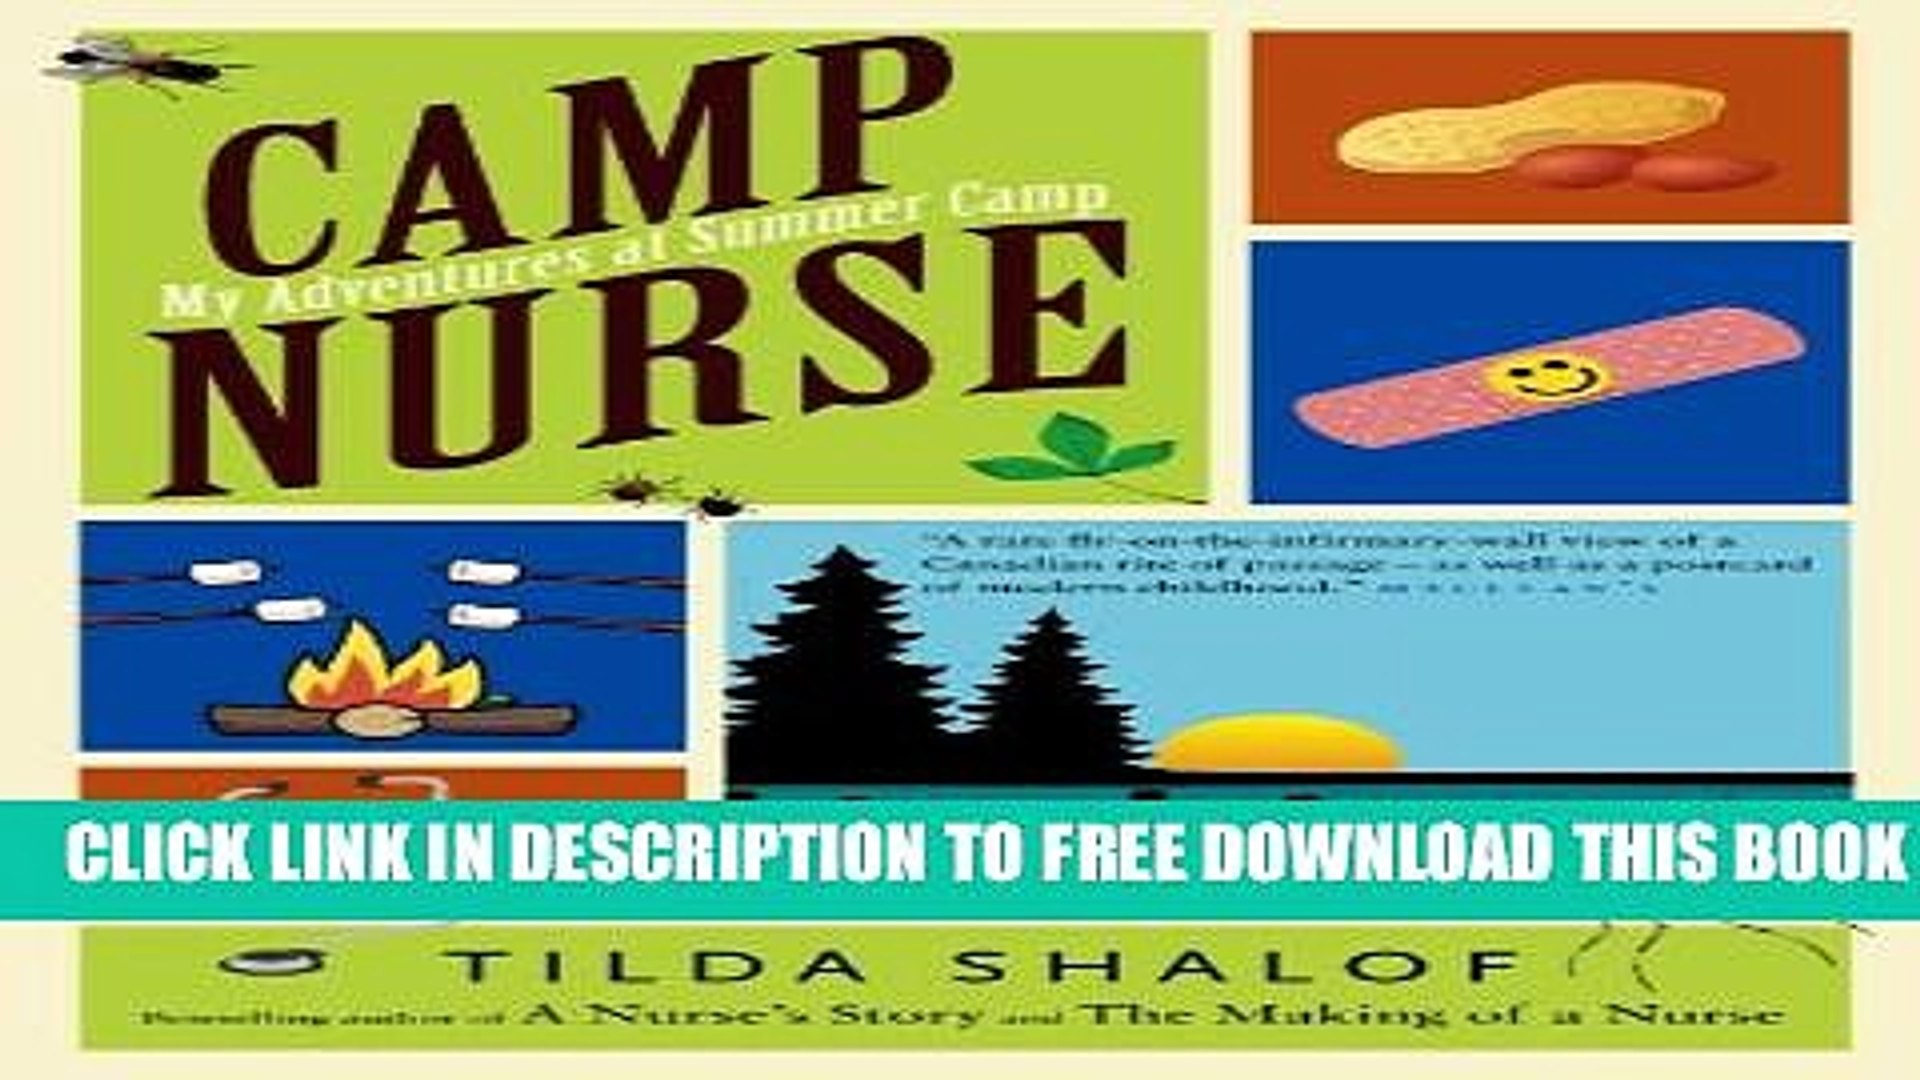 [PDF] Camp Nurse: My Adventures at Summer Camp Popular Colection